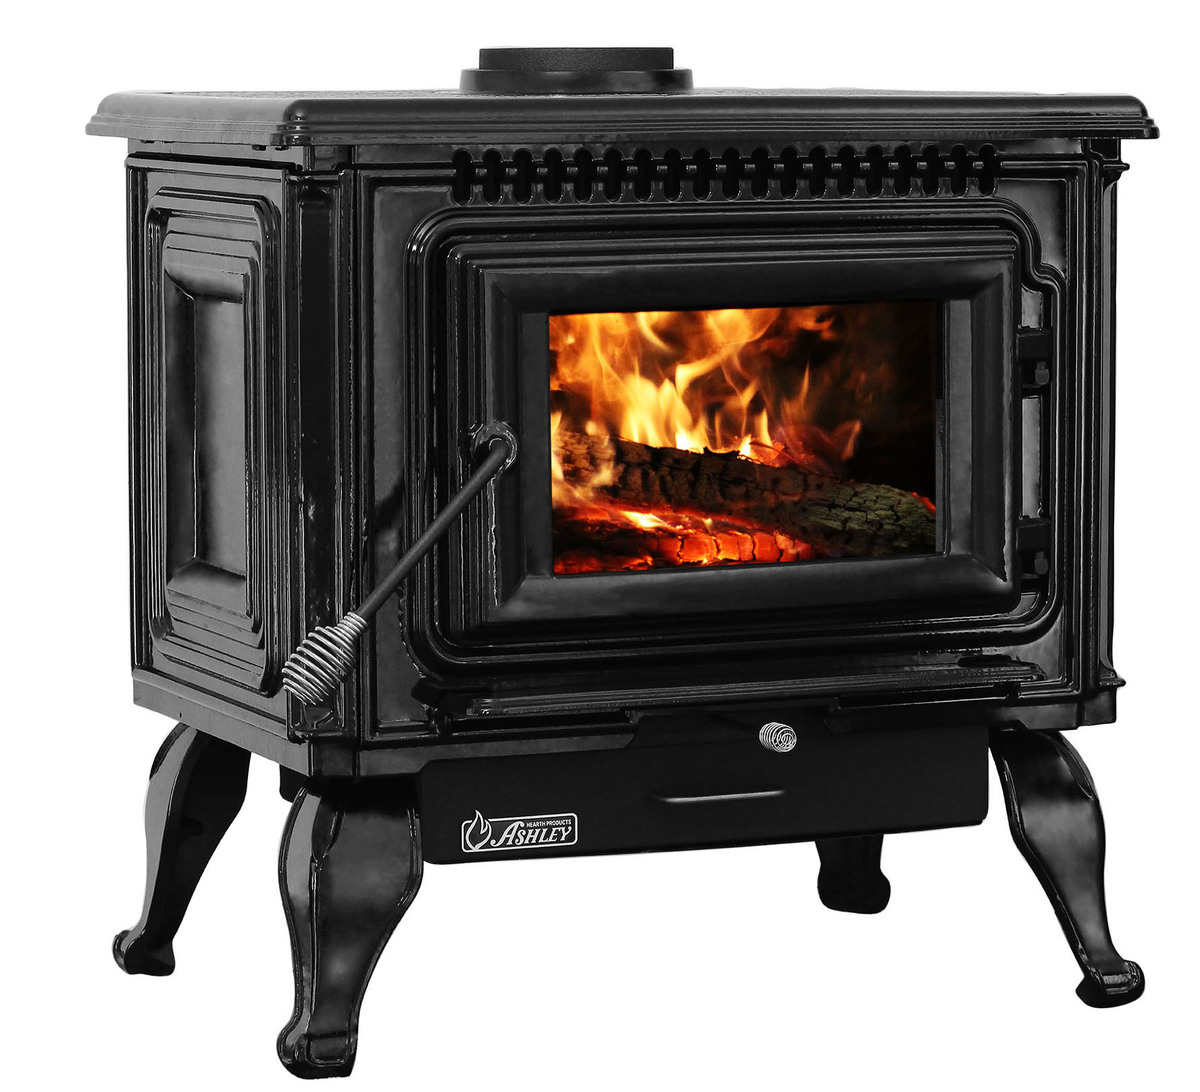 Wood Burning Fireplace Heater Blower 2 000 Sq Ft Epa Certified Black Enameled Porcelain Cast Iron Wood Stove With Blower